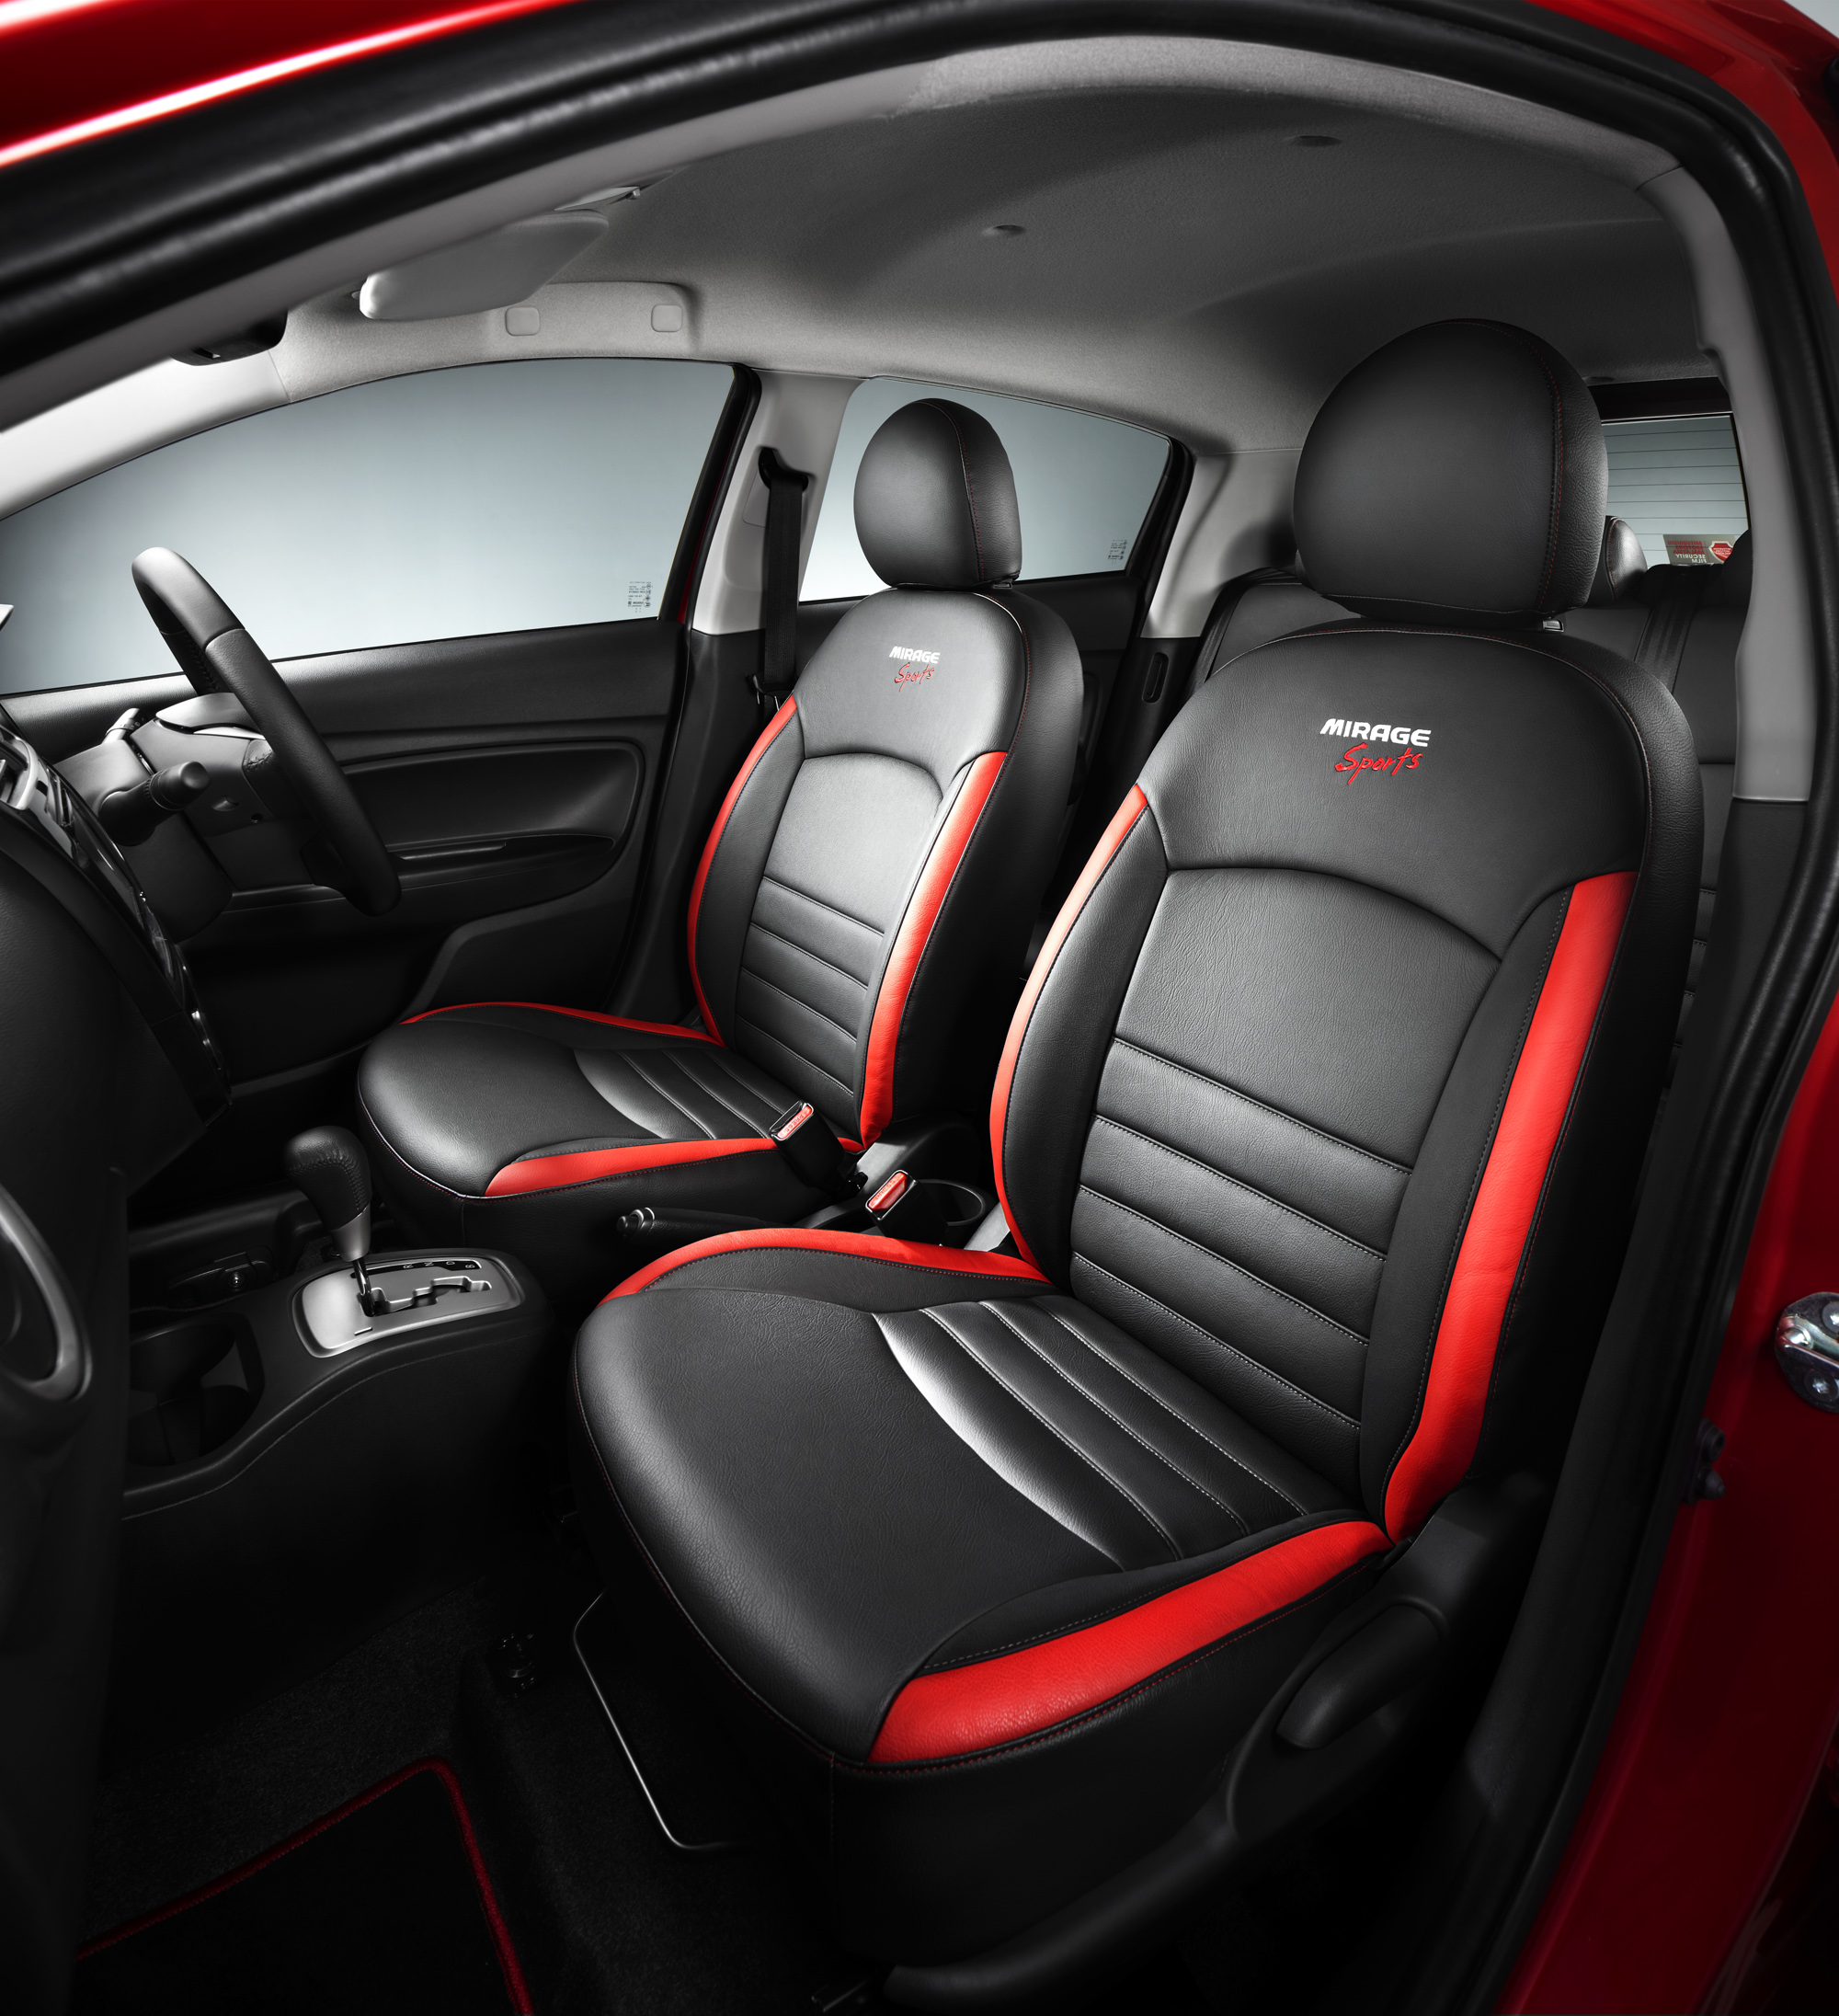 Car Leather Seat Covers Price In Pune